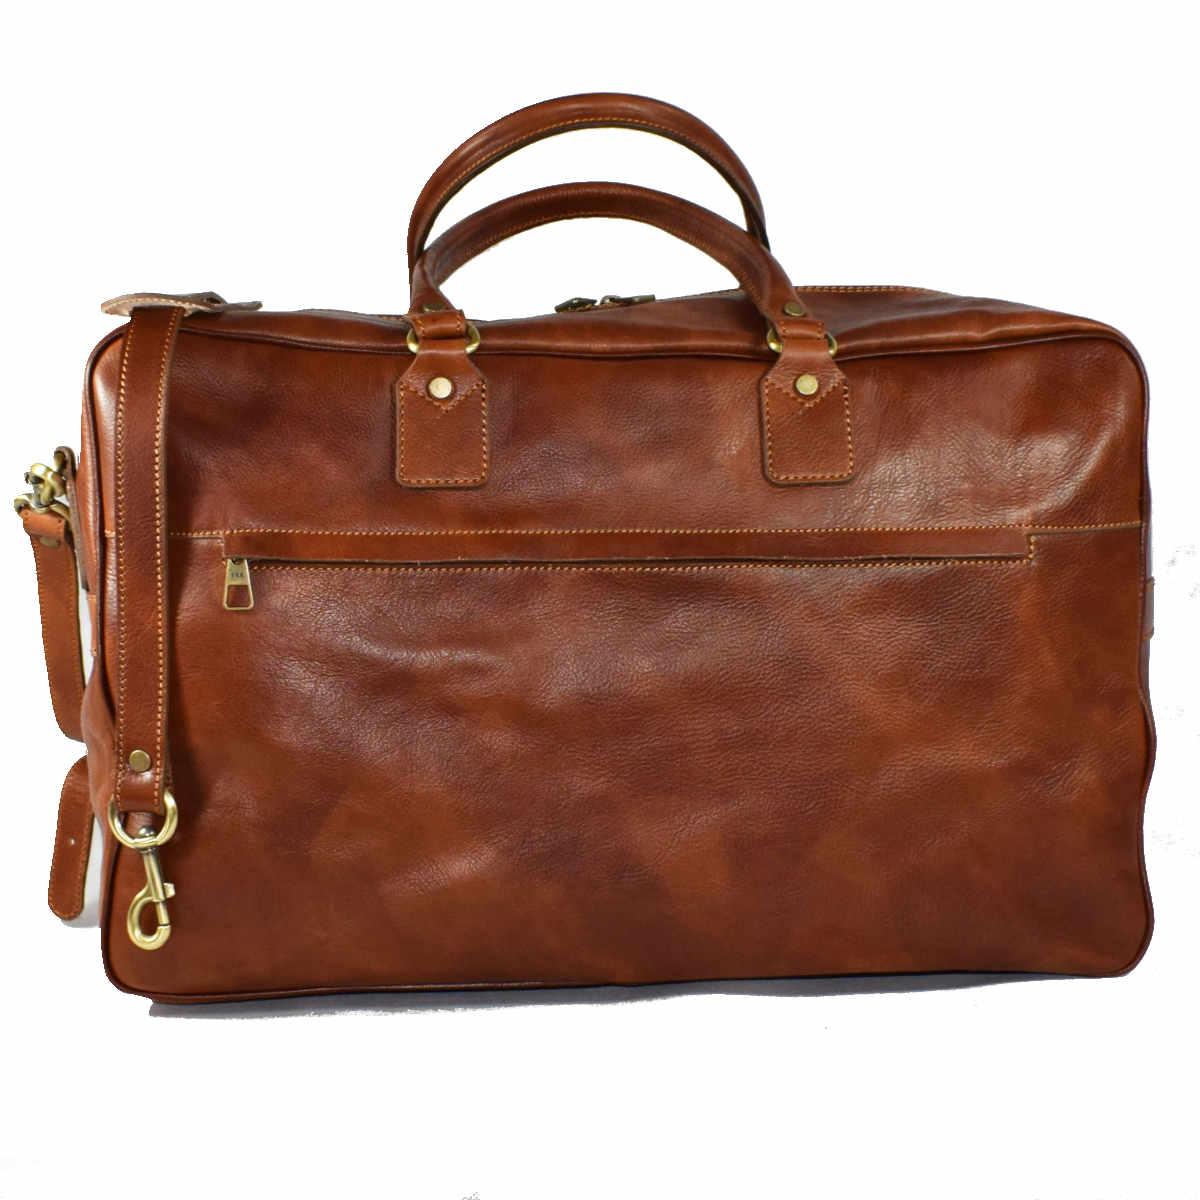 24562 TRAVEL BAG by Bottega Fiorentina